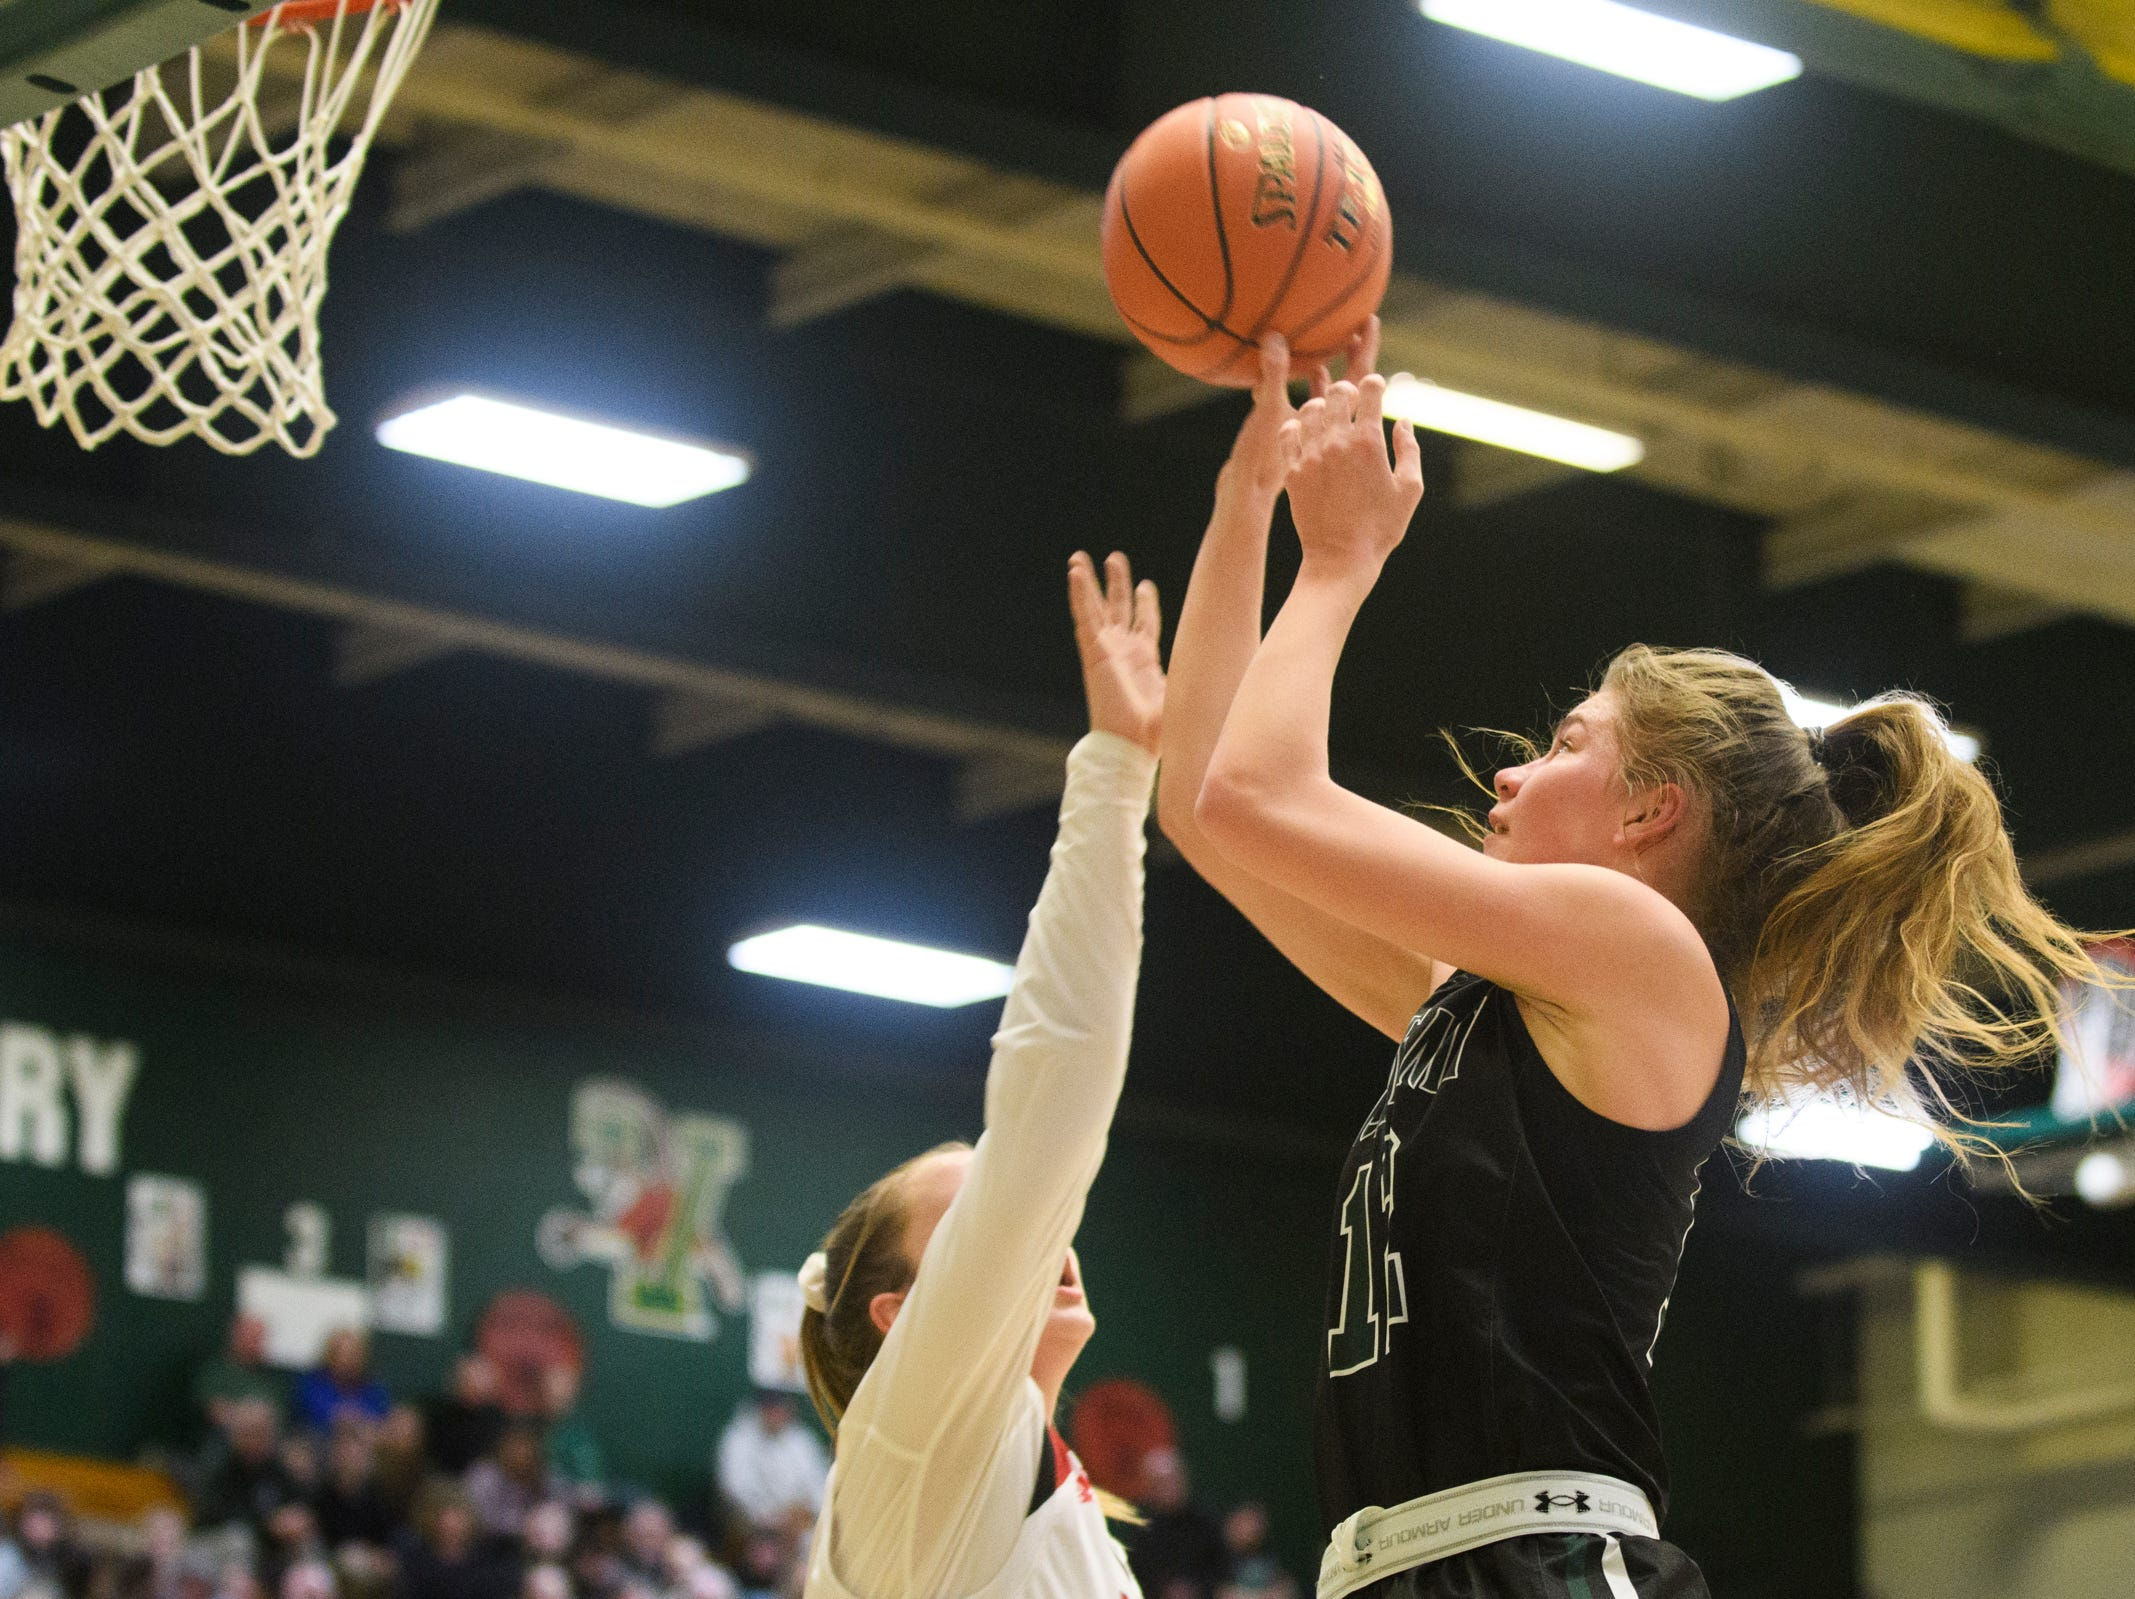 St. Johnsbury's Lara Rohkohl (12) leaps to take a shot during the division I girls basketball championship basketball game between the St. Johnsbury Hilltoppers and the Champlain Valley Union Redhawks at Patrick Gym on Sunday afternoon March 10, 2019 in Burlington, Vermont.